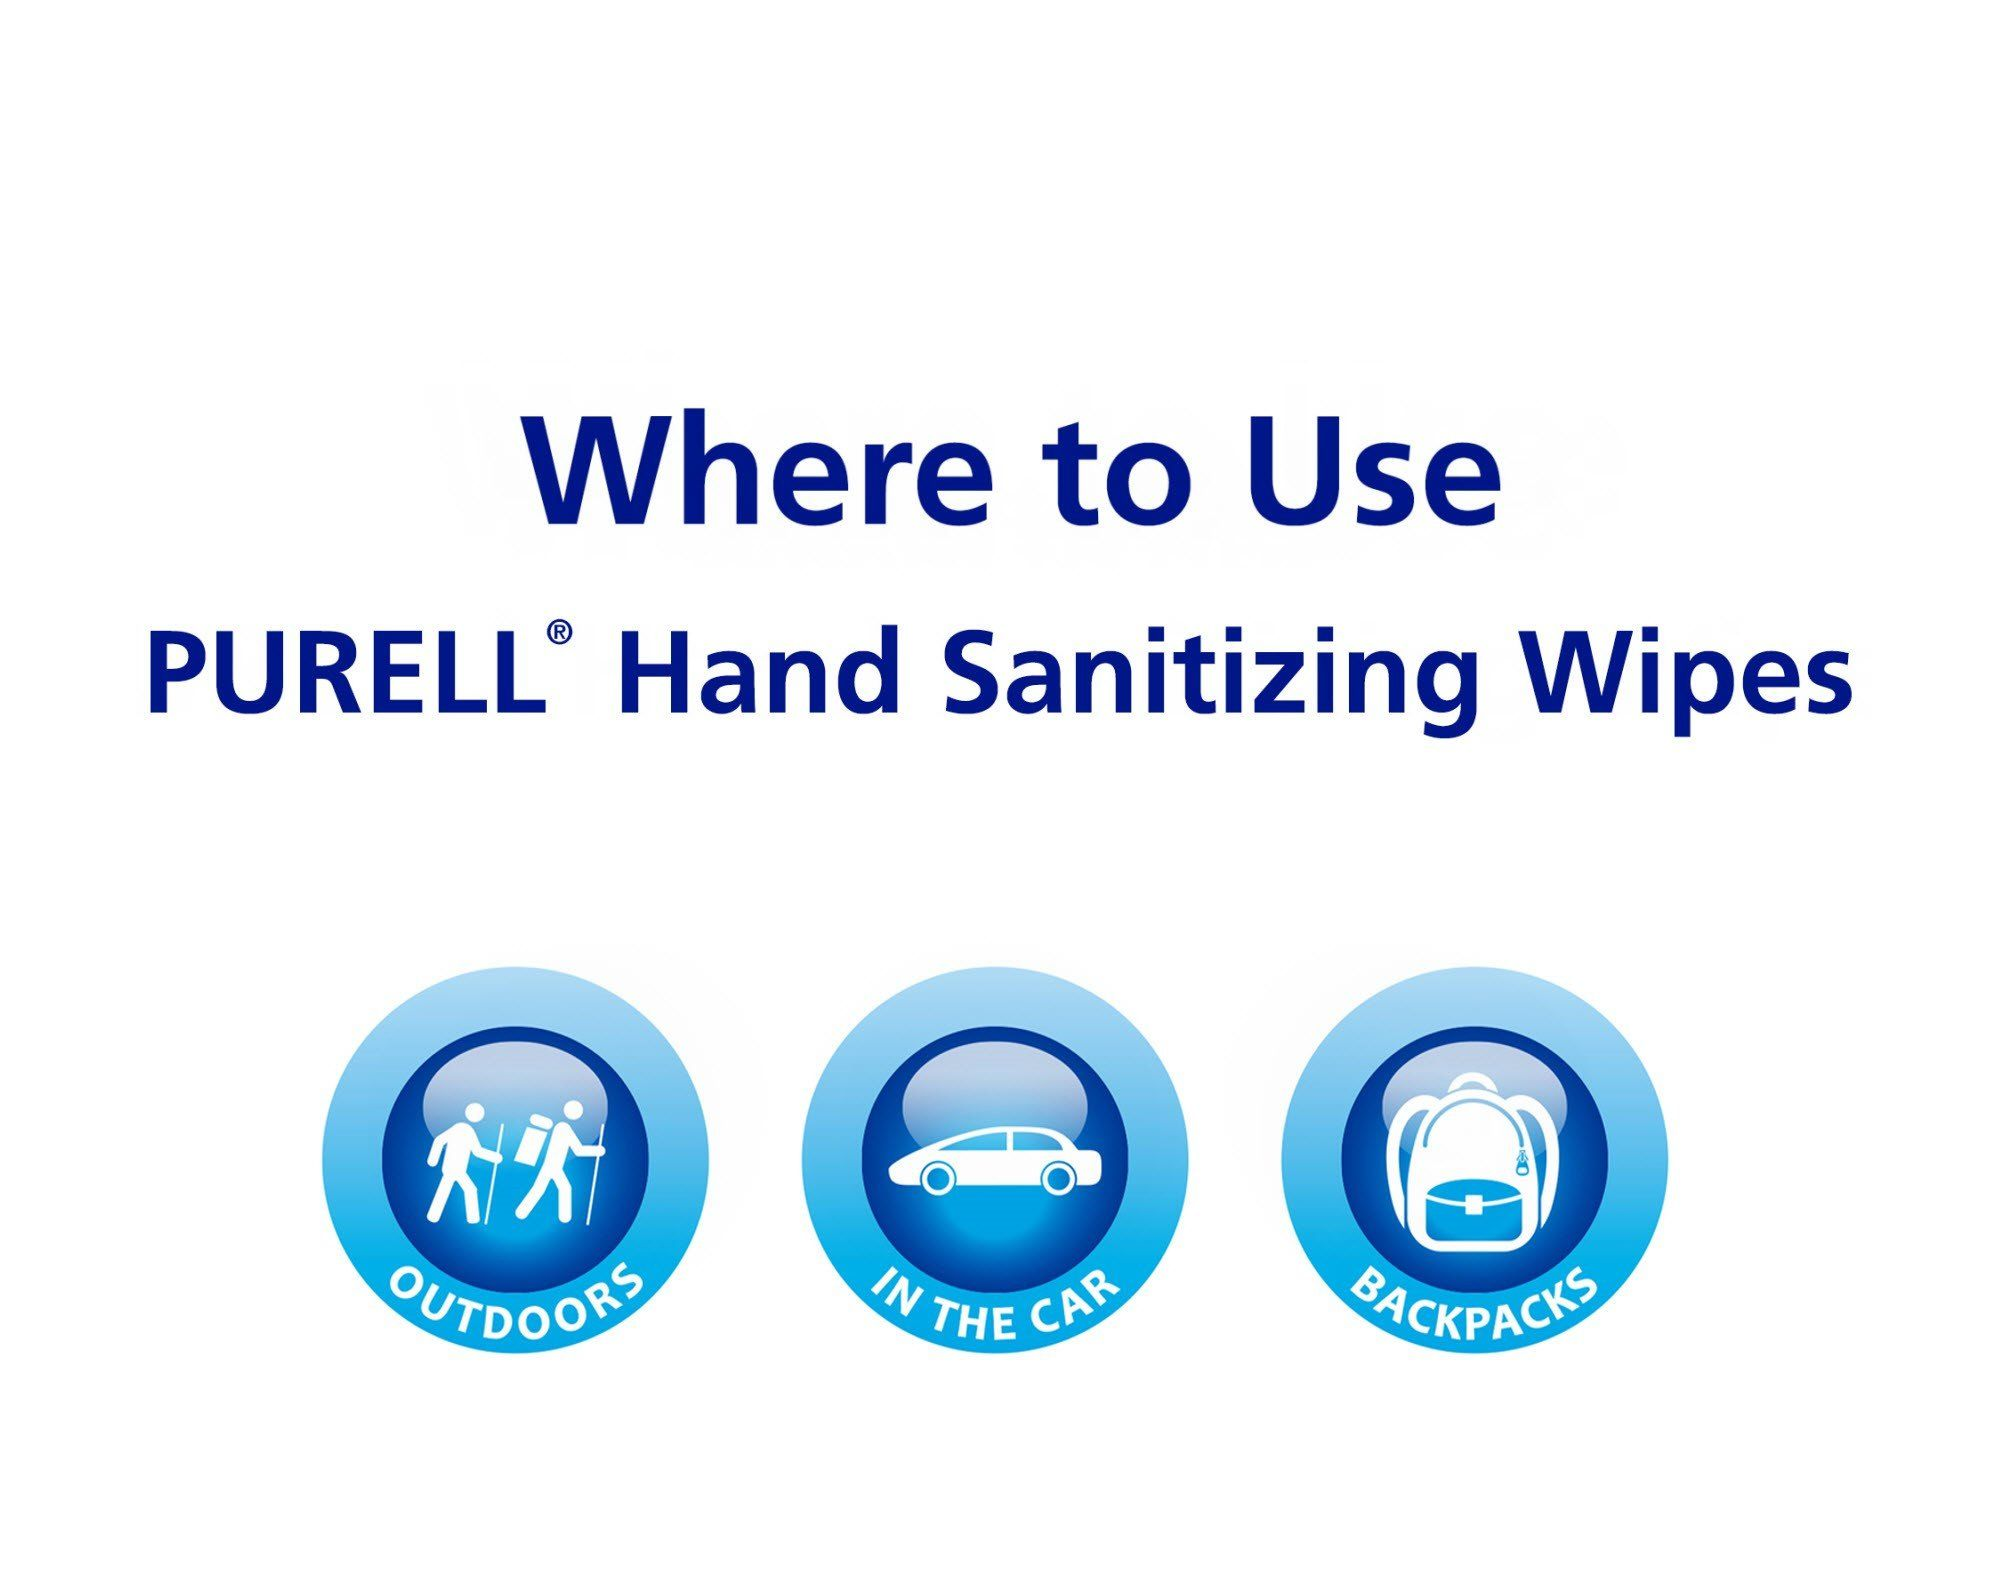 Hospital Bag Purell Hand Sanitizing Alcohol Wipes Portable